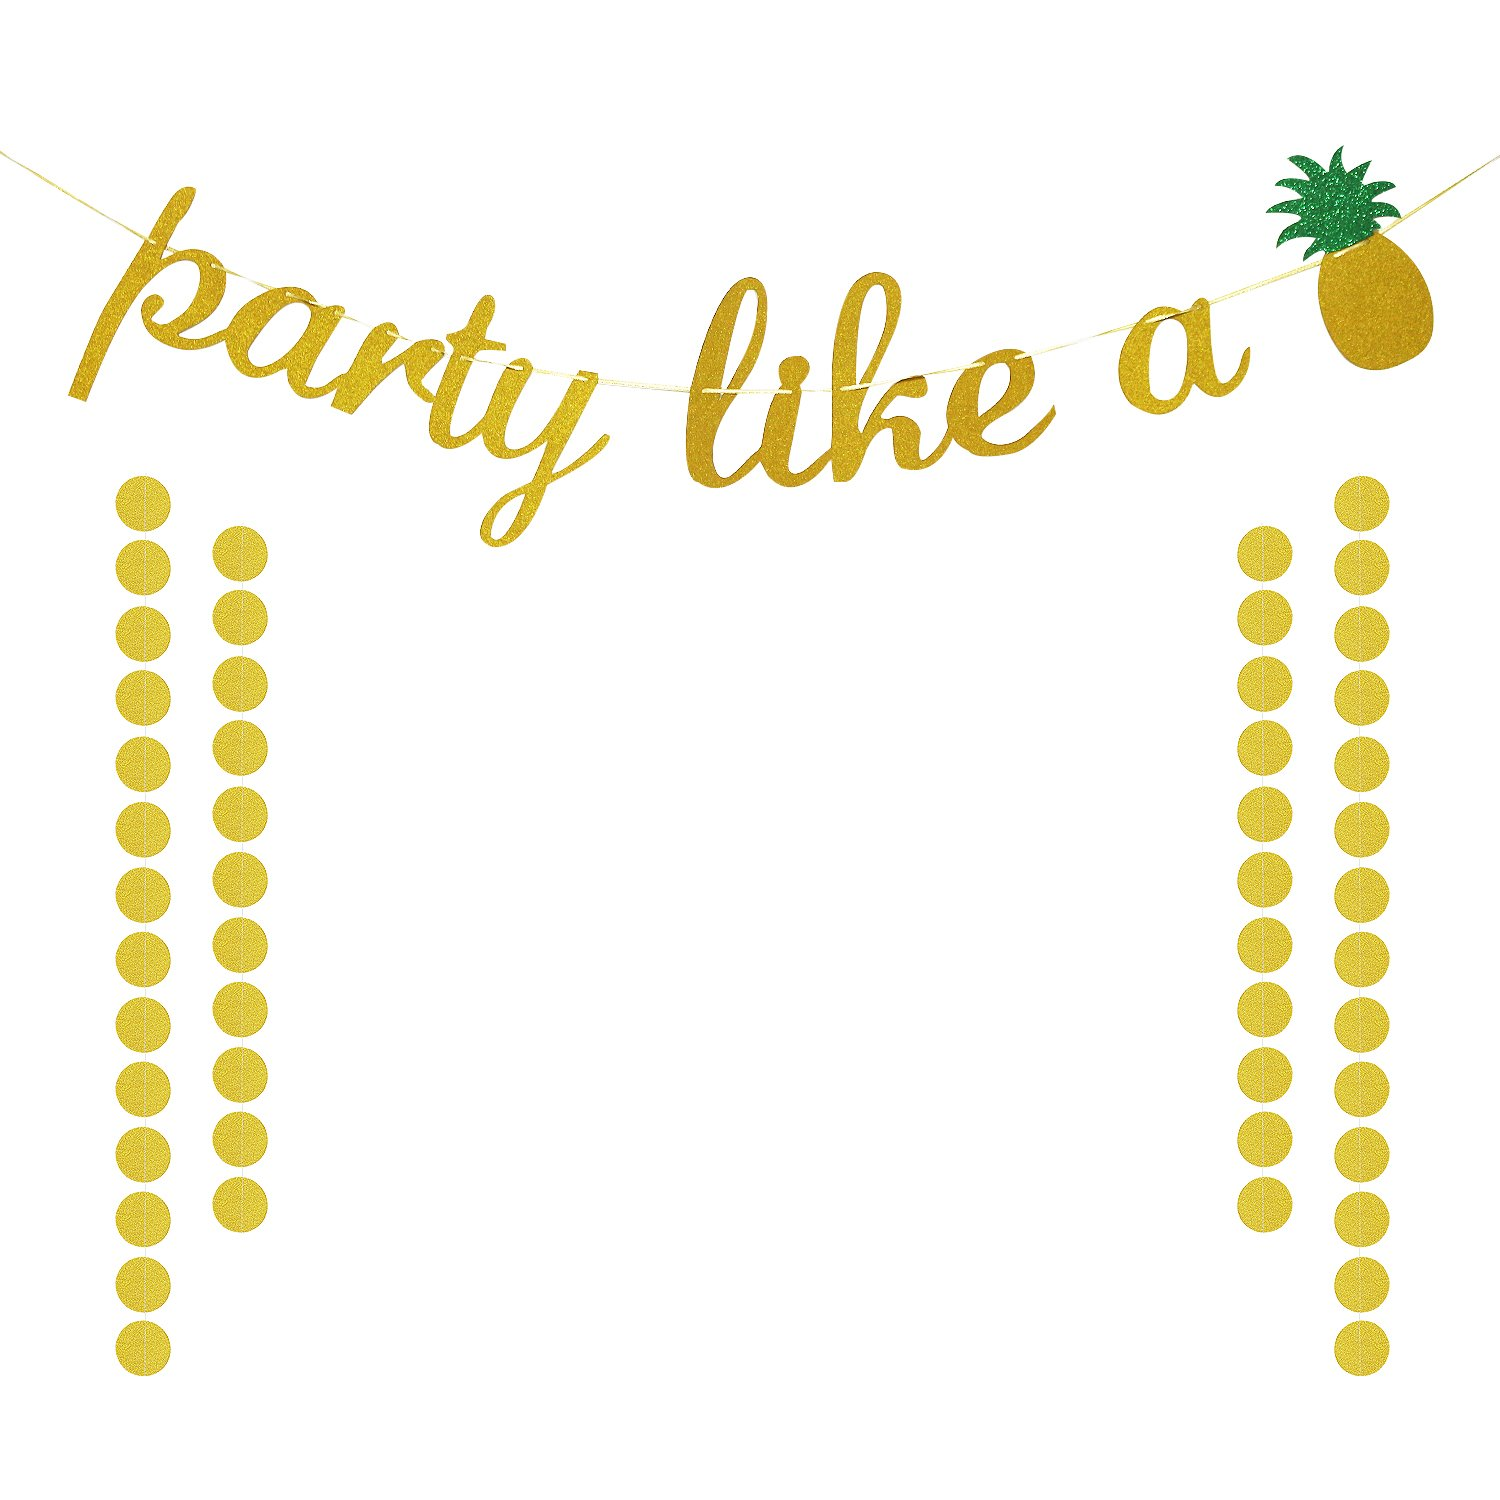 Gold Glittery Party Like A Pineapple Banner for Hawaiian Tropical Luau Beach Summer Theme Party Decorations Supplies | Extra Gold Glittery Circle Dots Garland (50pcs Circle Dots)